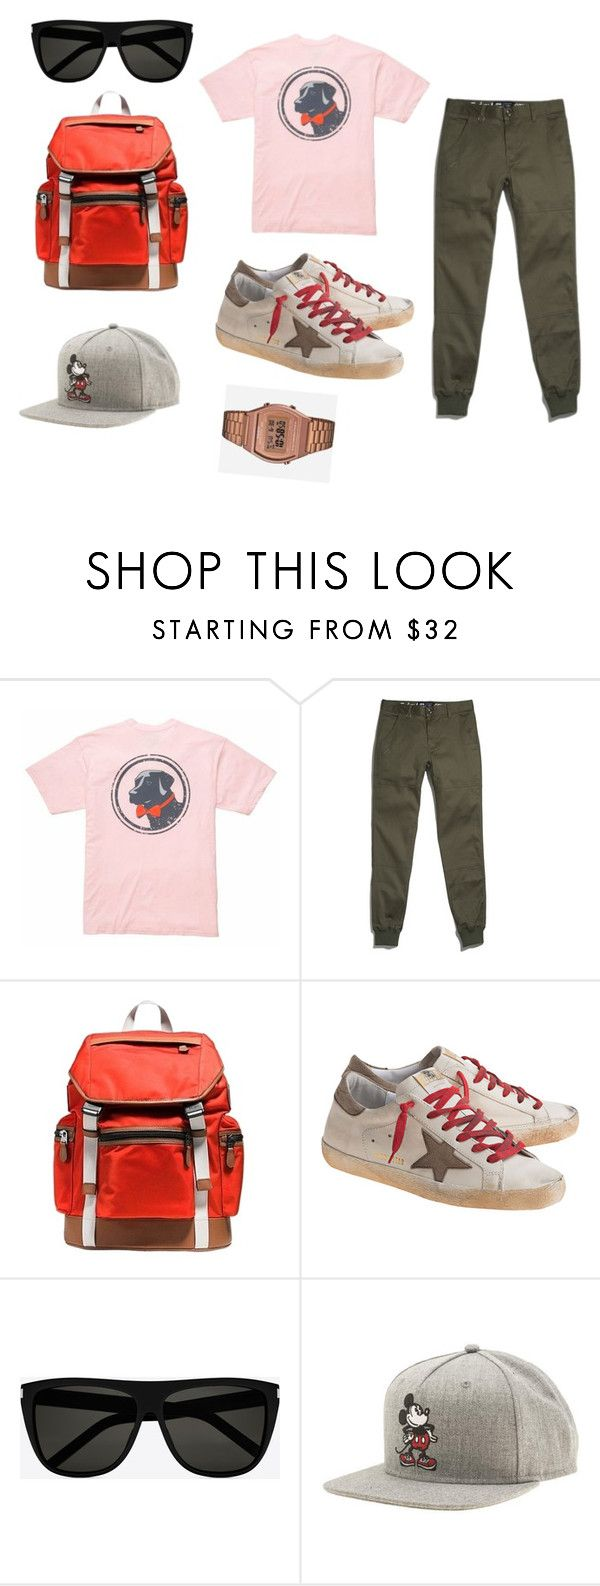 """Untitled #21"" by clarairawan on Polyvore featuring Southern Proper, Coach, Golden Goose, Yves Saint Laurent, Vans and Casio"